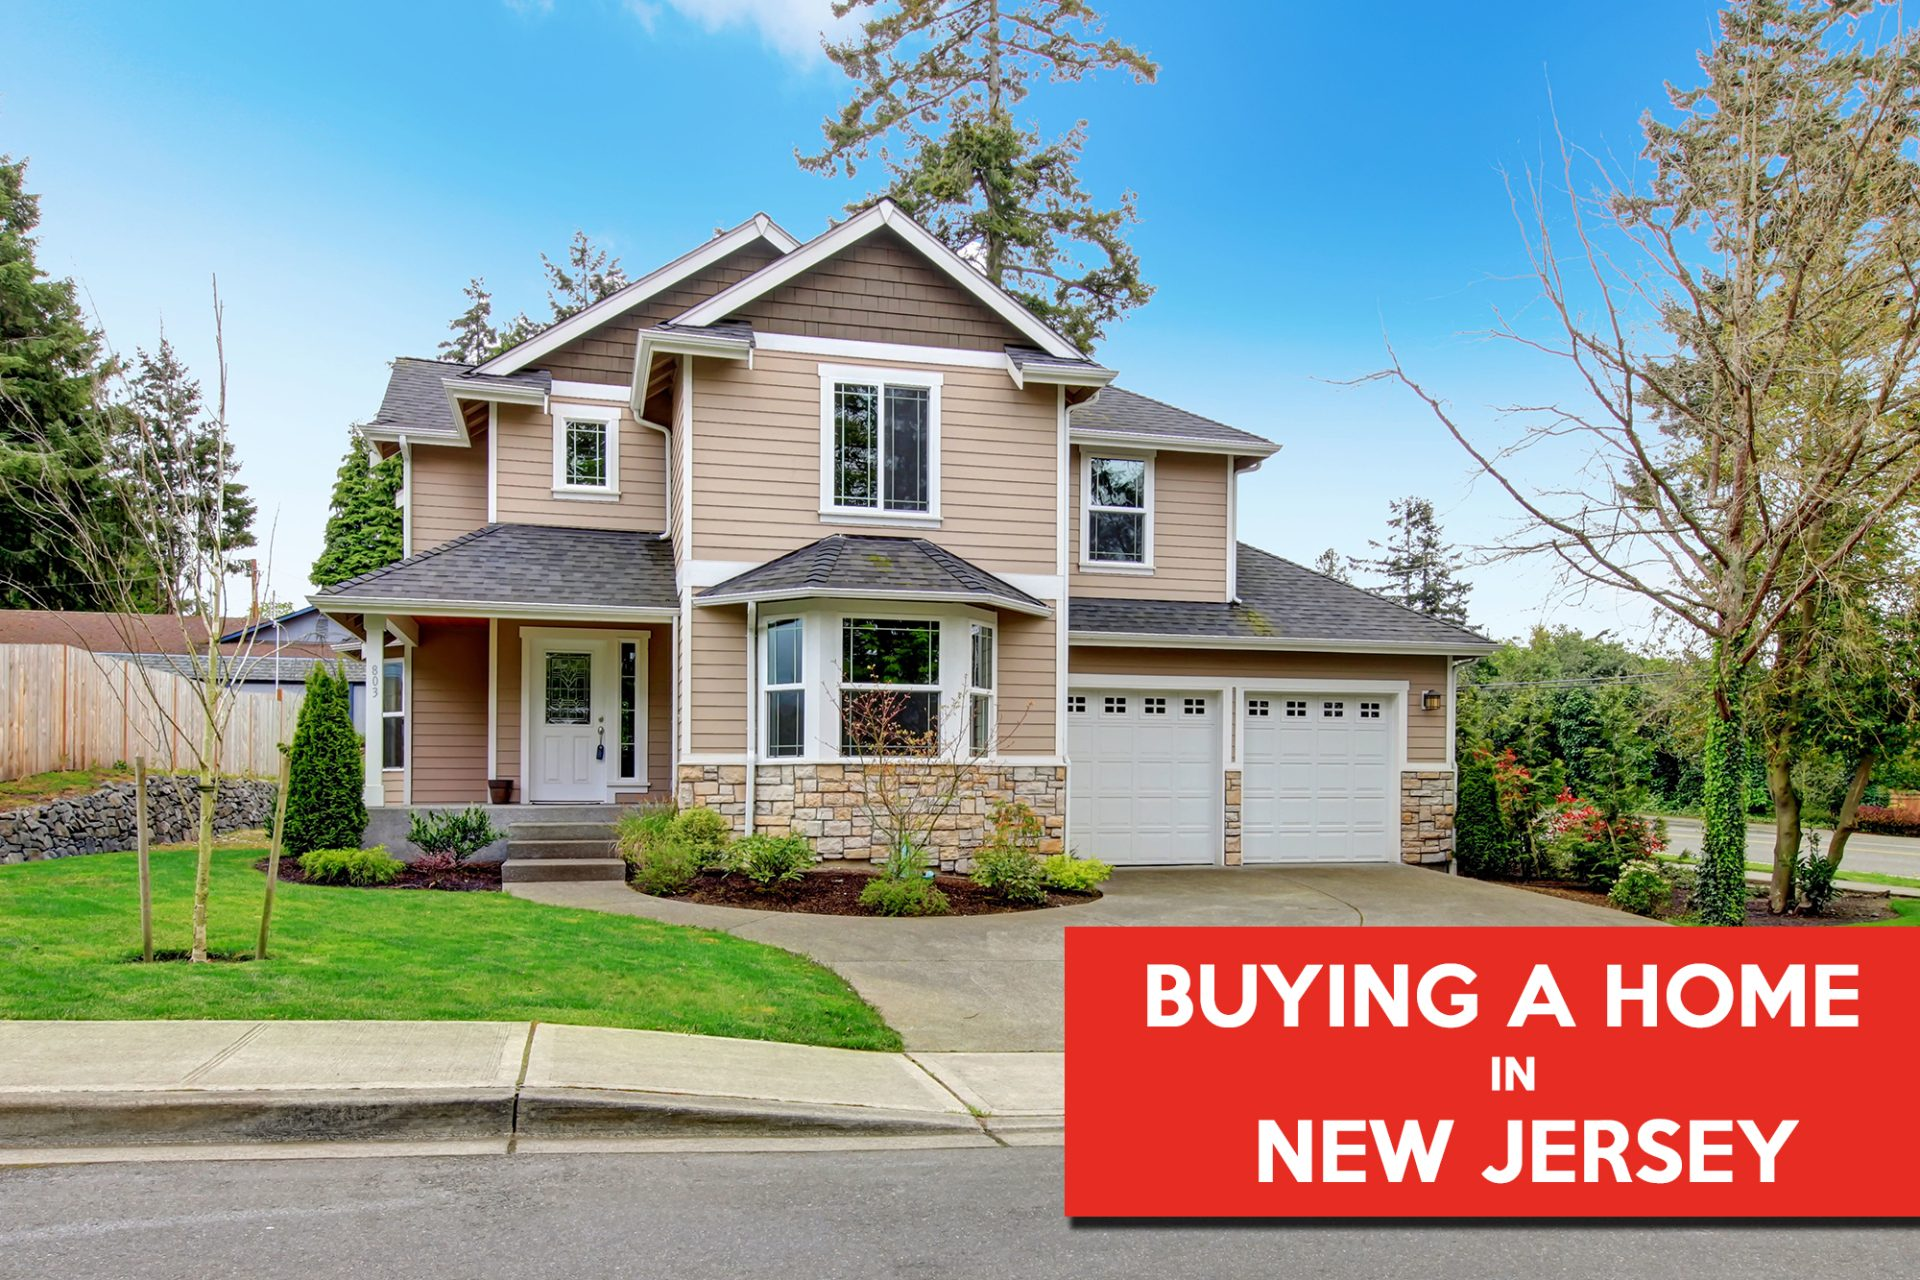 Why You Should Buy A Home In New Jersey Now